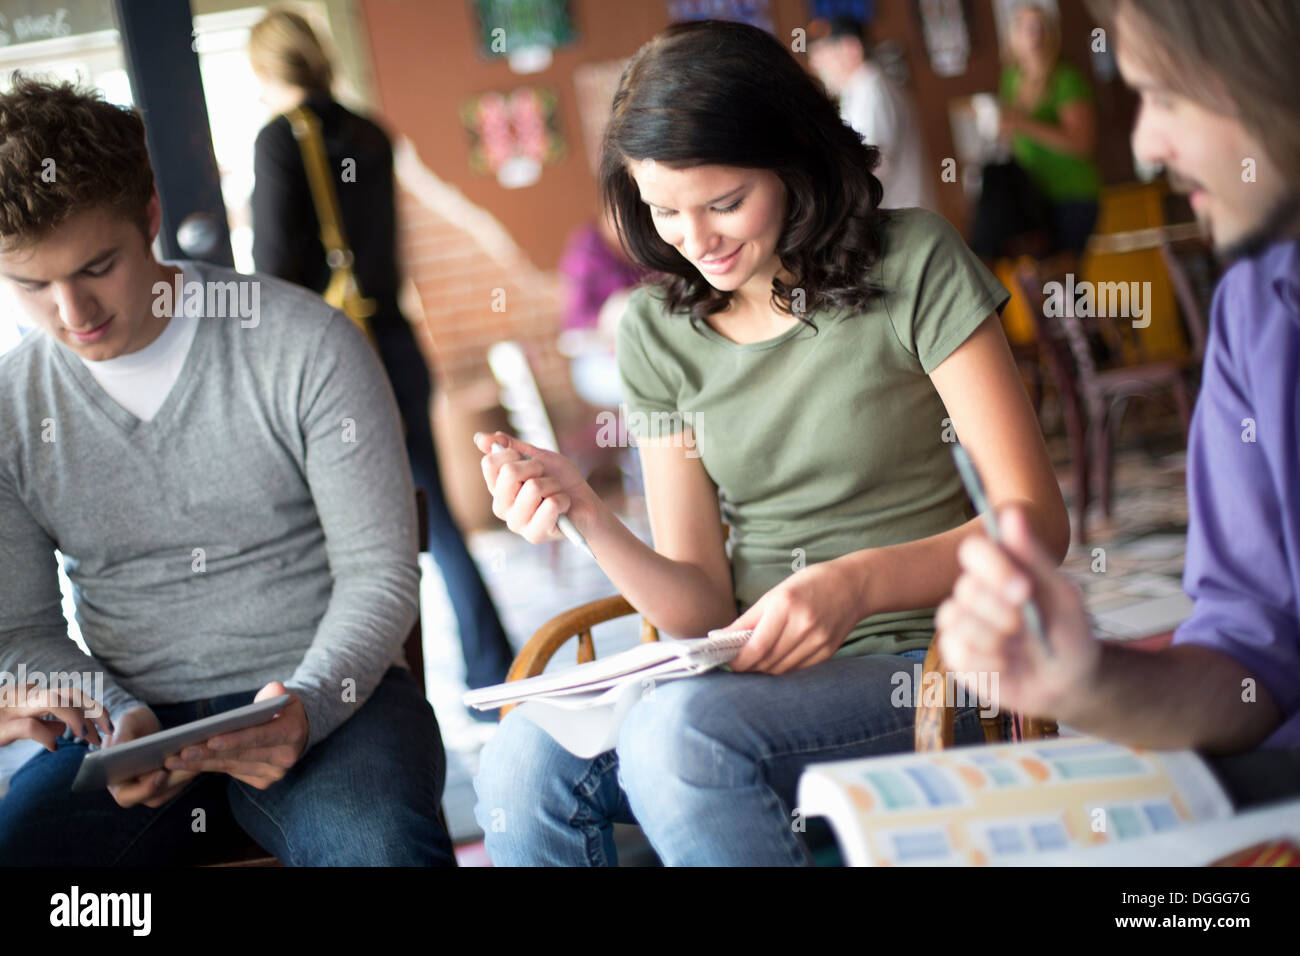 Petit groupe de personnes qui étudient au cafe Photo Stock